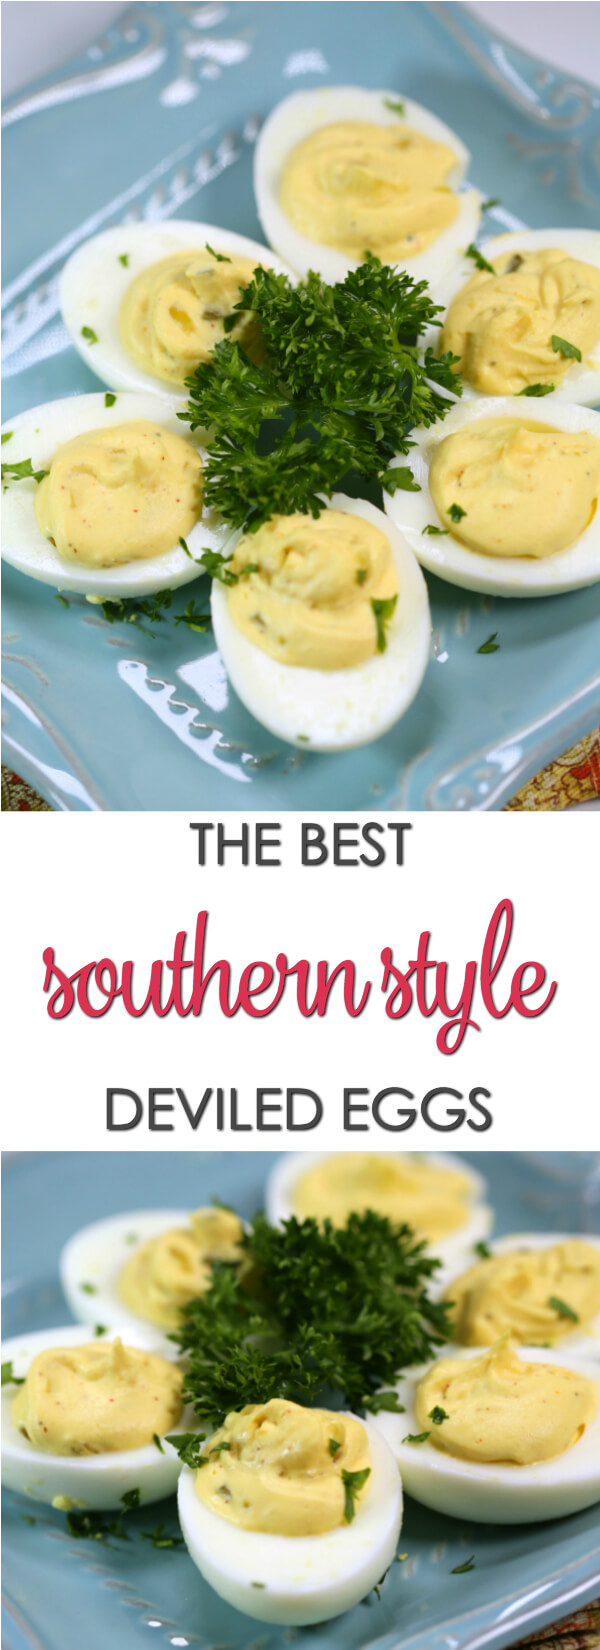 This southern-style deviled eggs recipe is very similar to the Paula Deen deviled egg recipe. It's a delicious twist on my best classic deviled eggs recipe.  This easy recipe has the perfect balance of sweetness from the relish, tanginess and creaminess.  Find more easy deviled eggs recipes on www.itisakeeper.com  #Itisakeeper #easter #eggs #appetizer #easyrecipe #partyfood